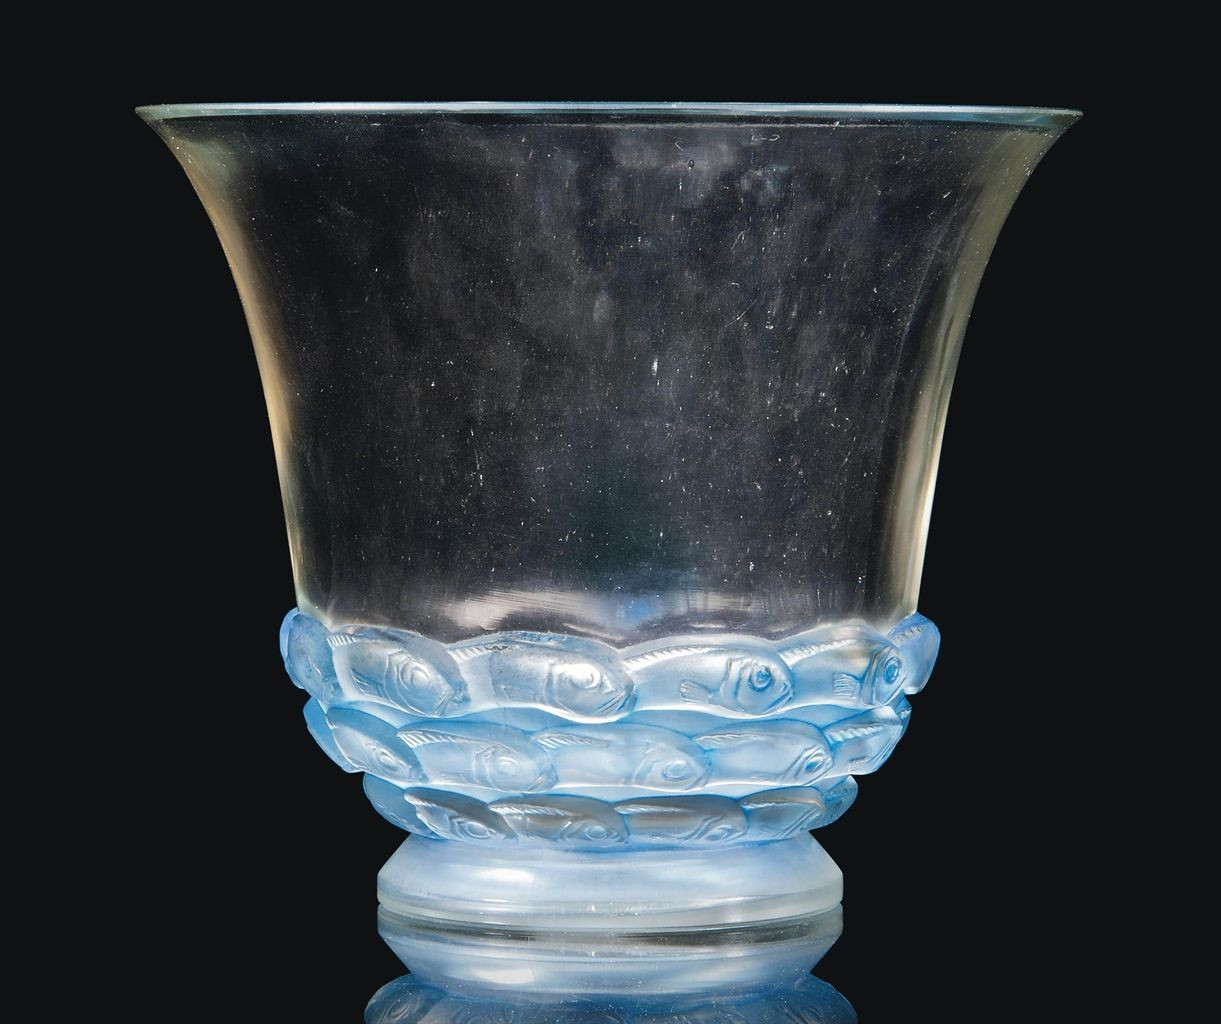 flared glass vase of monaco vase no 1049 designed 1930 clear frosted and blue stained intended for monaco vase no 1049 designed 1930 clear frosted and blue stained stencilled